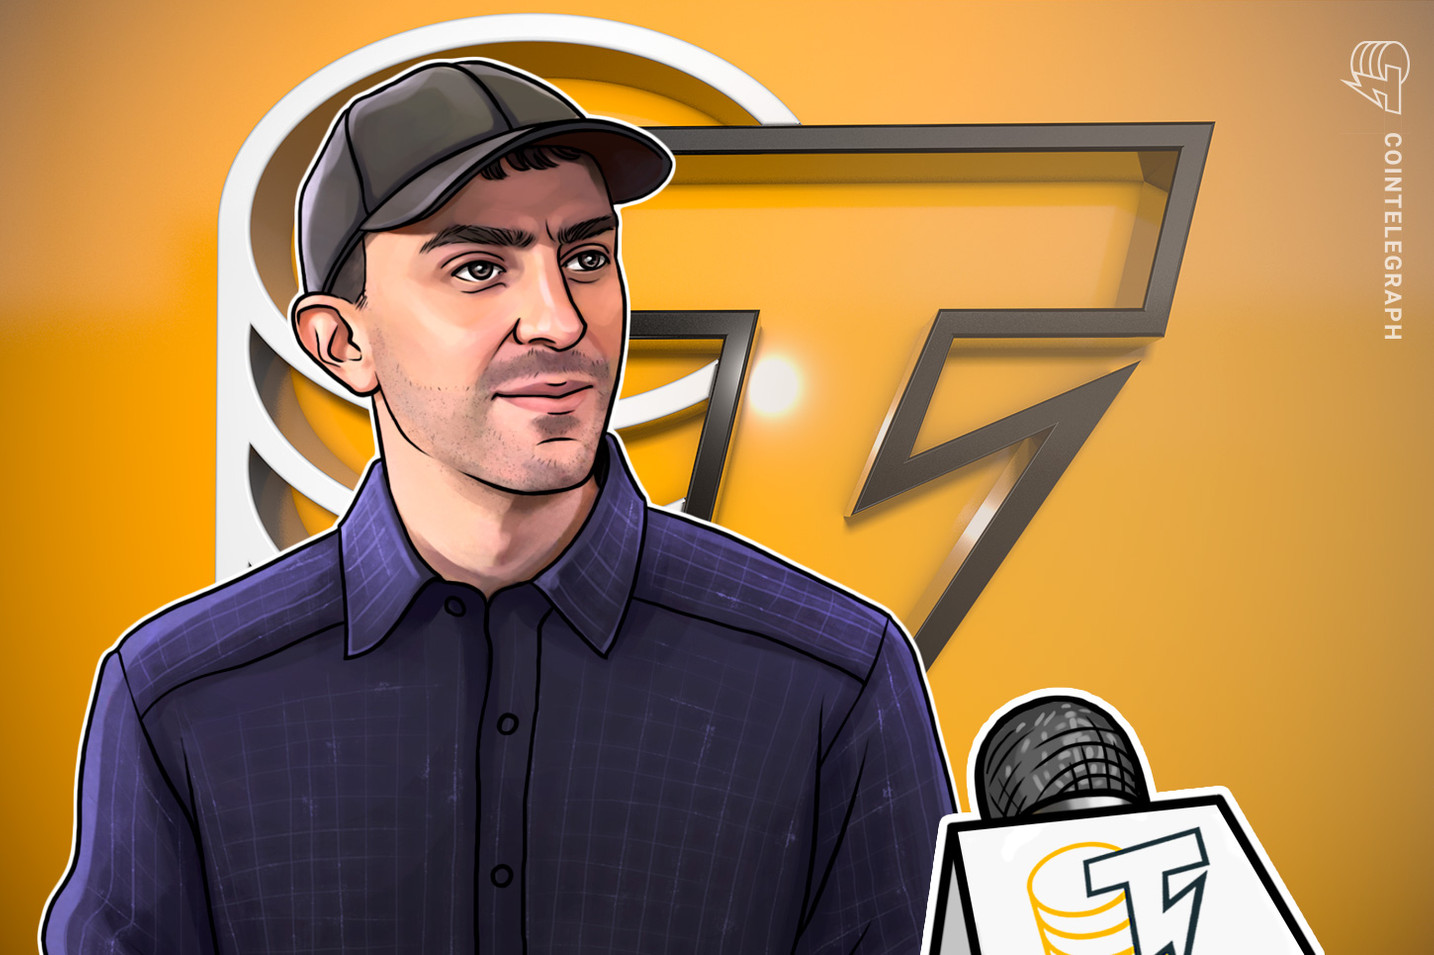 Tone Vays: Ethereum Is Useless — Bitcoin Price Could Hit $100K in 2023